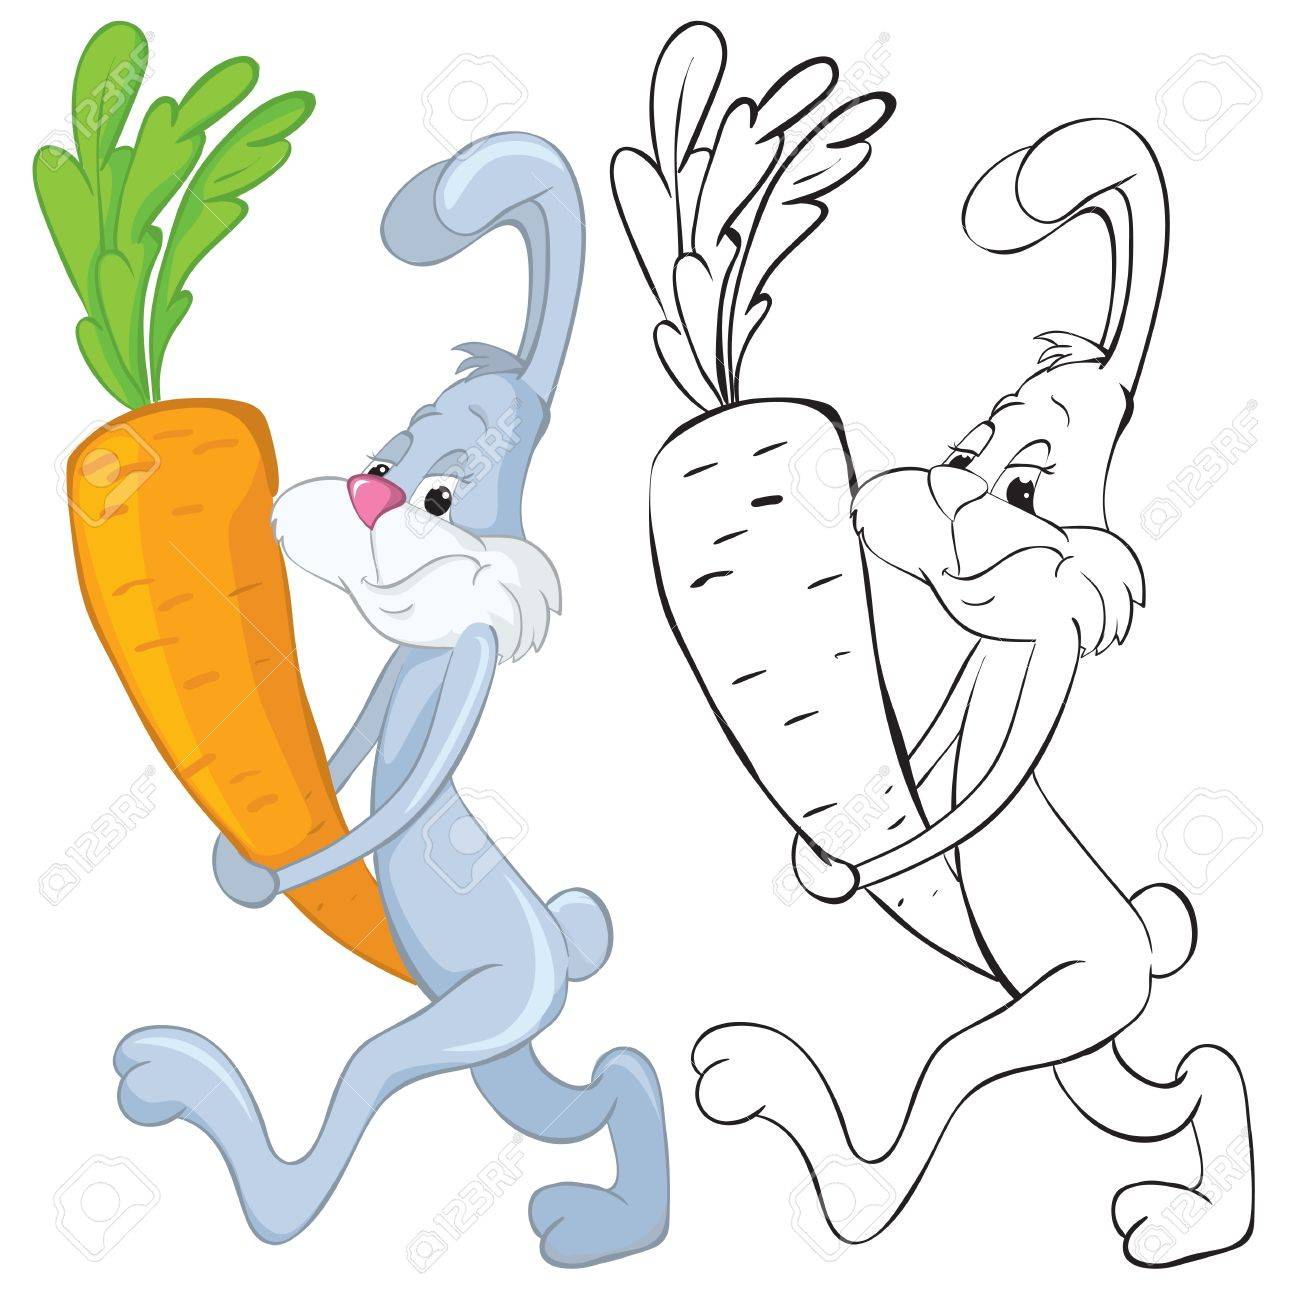 Bunny and carrot. B&W outline illustraton Stock Vector - 9284196